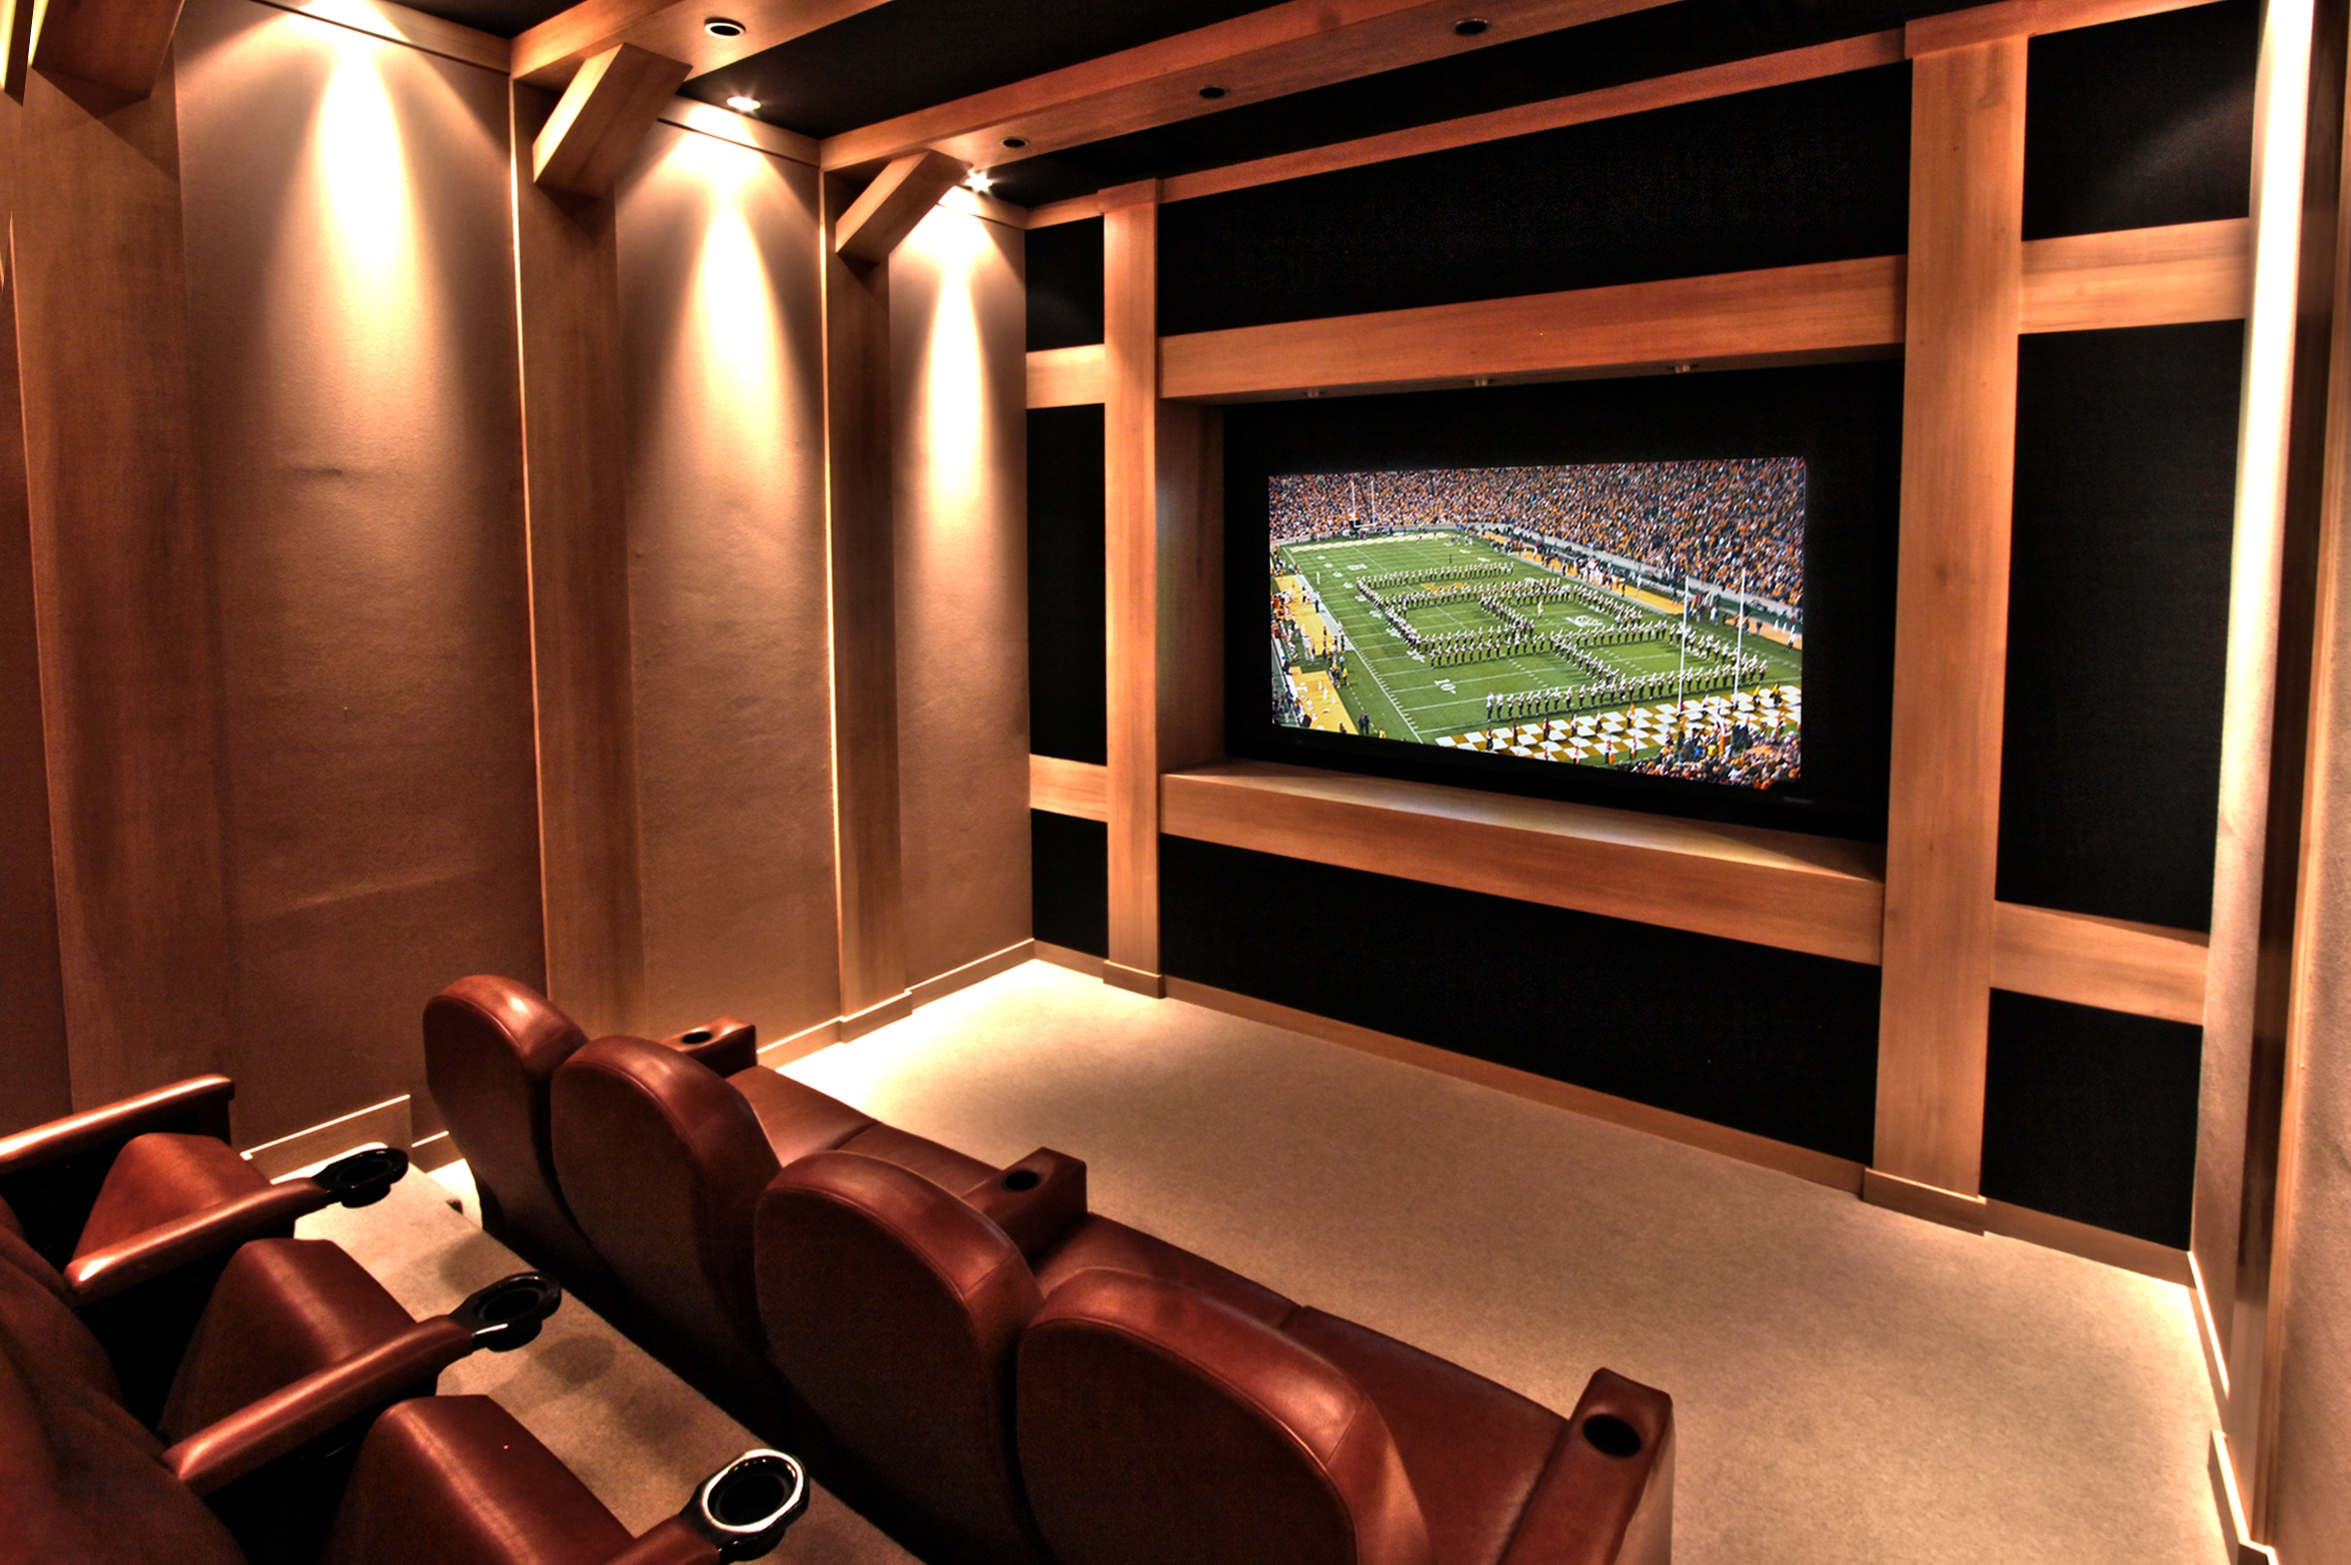 Blog Safet Systems Easy Enjoyable Secure Track Lighting Without Using A Box Electrician Talk Professional Entering The World Of Home Theaters Can Feel Overwhelming With Amount Technology That Has Been Introduced Over Past Few Years